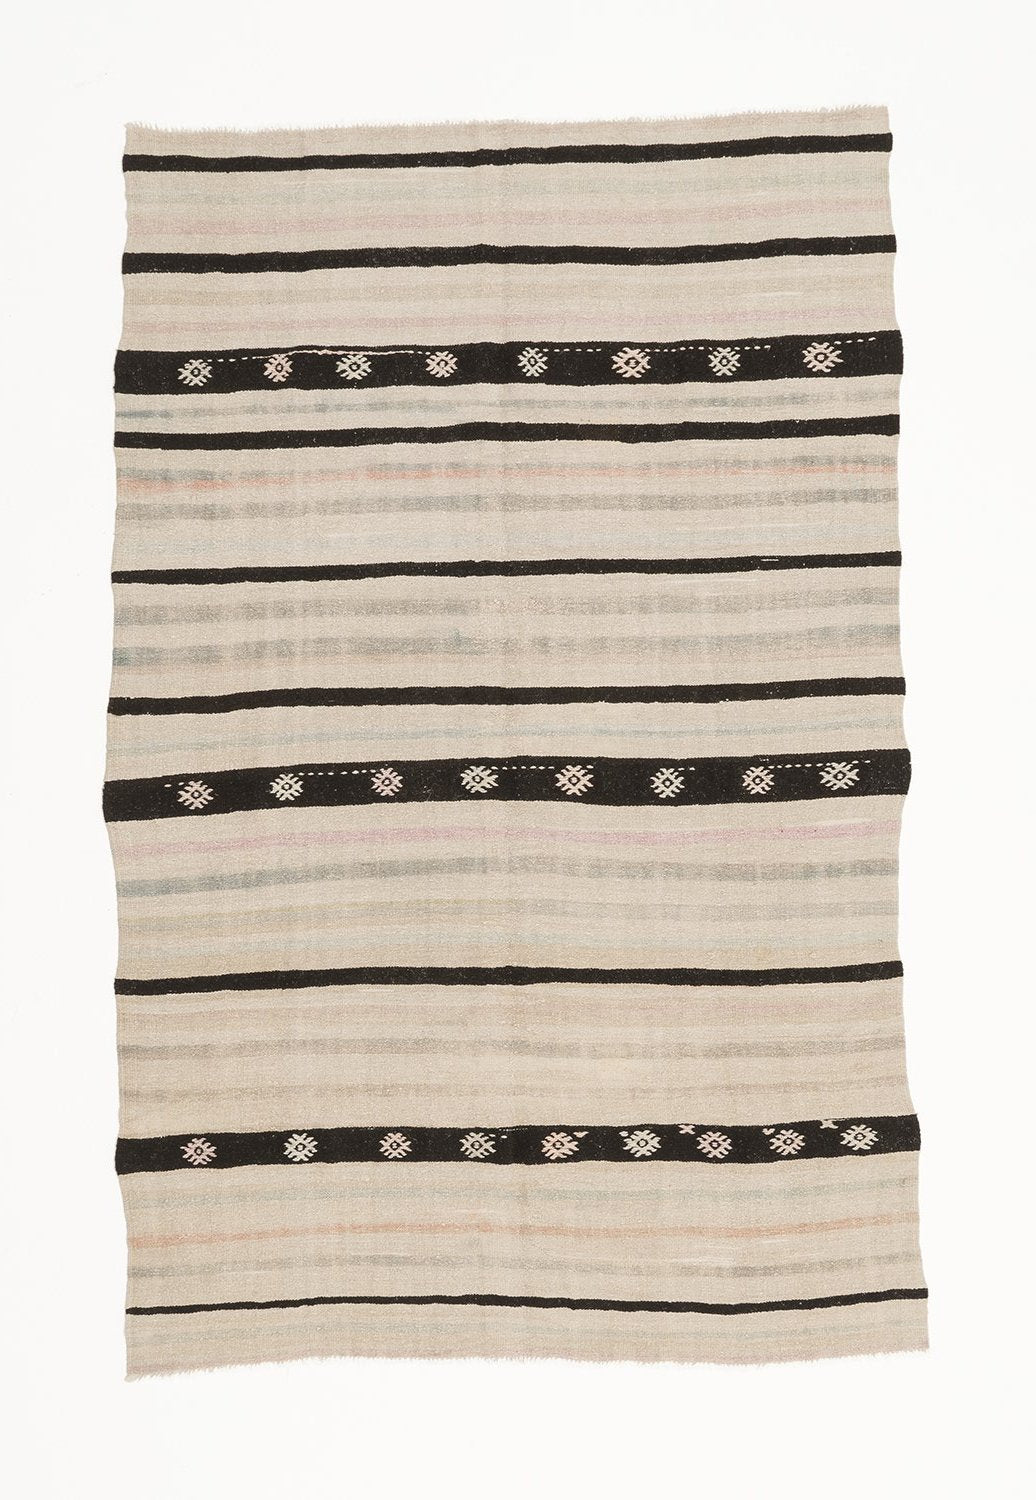 Traditional Vintage Hemp Rug - Inland Black Sea Region